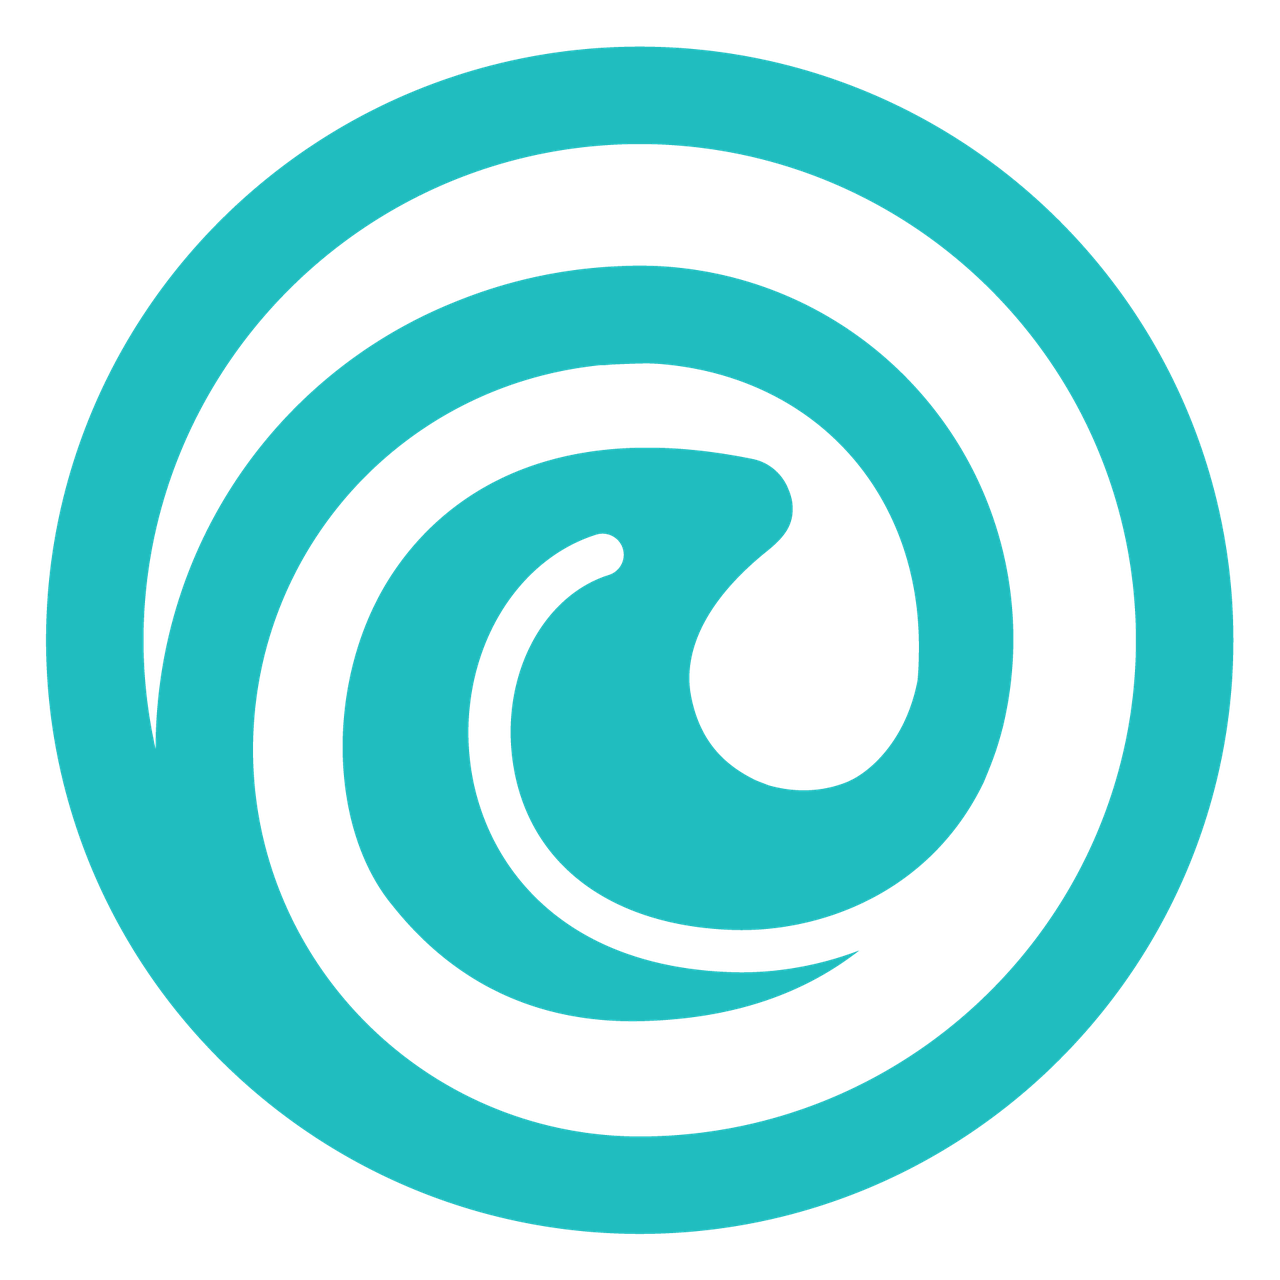 website-review-logo/LR Logo-TEAL EMBLEM.png